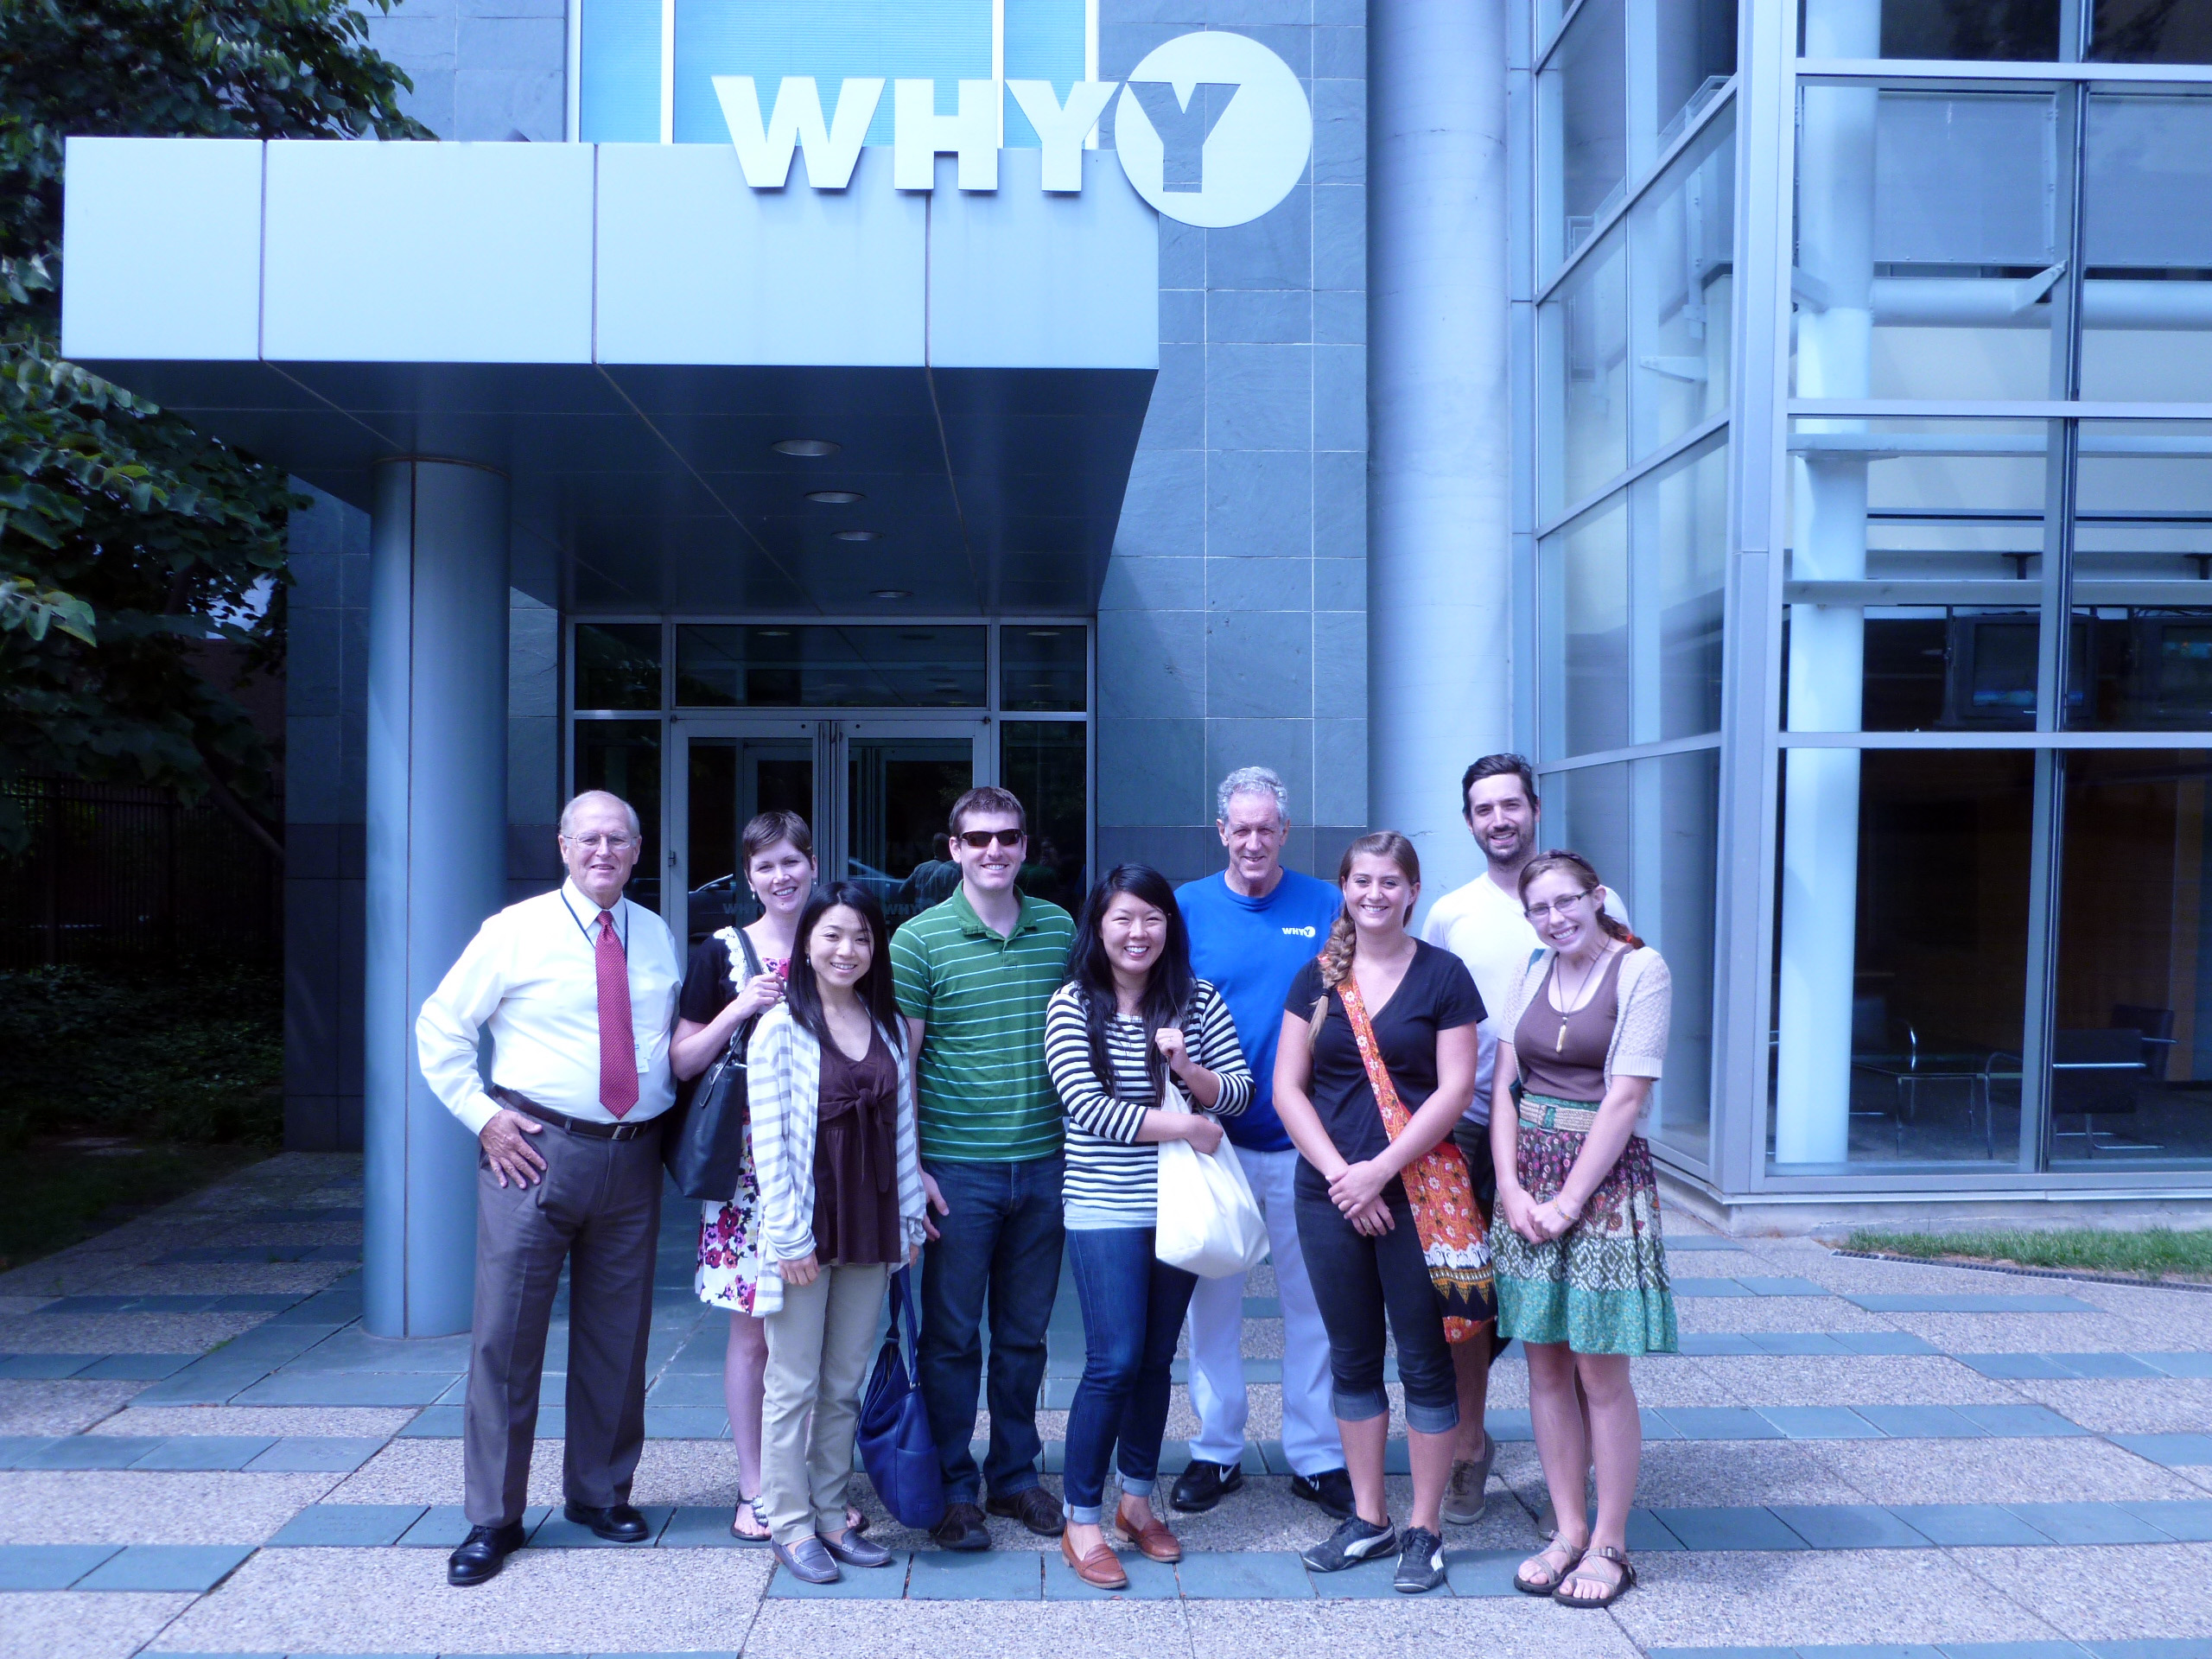 Hagley Fellows visiting WHYY